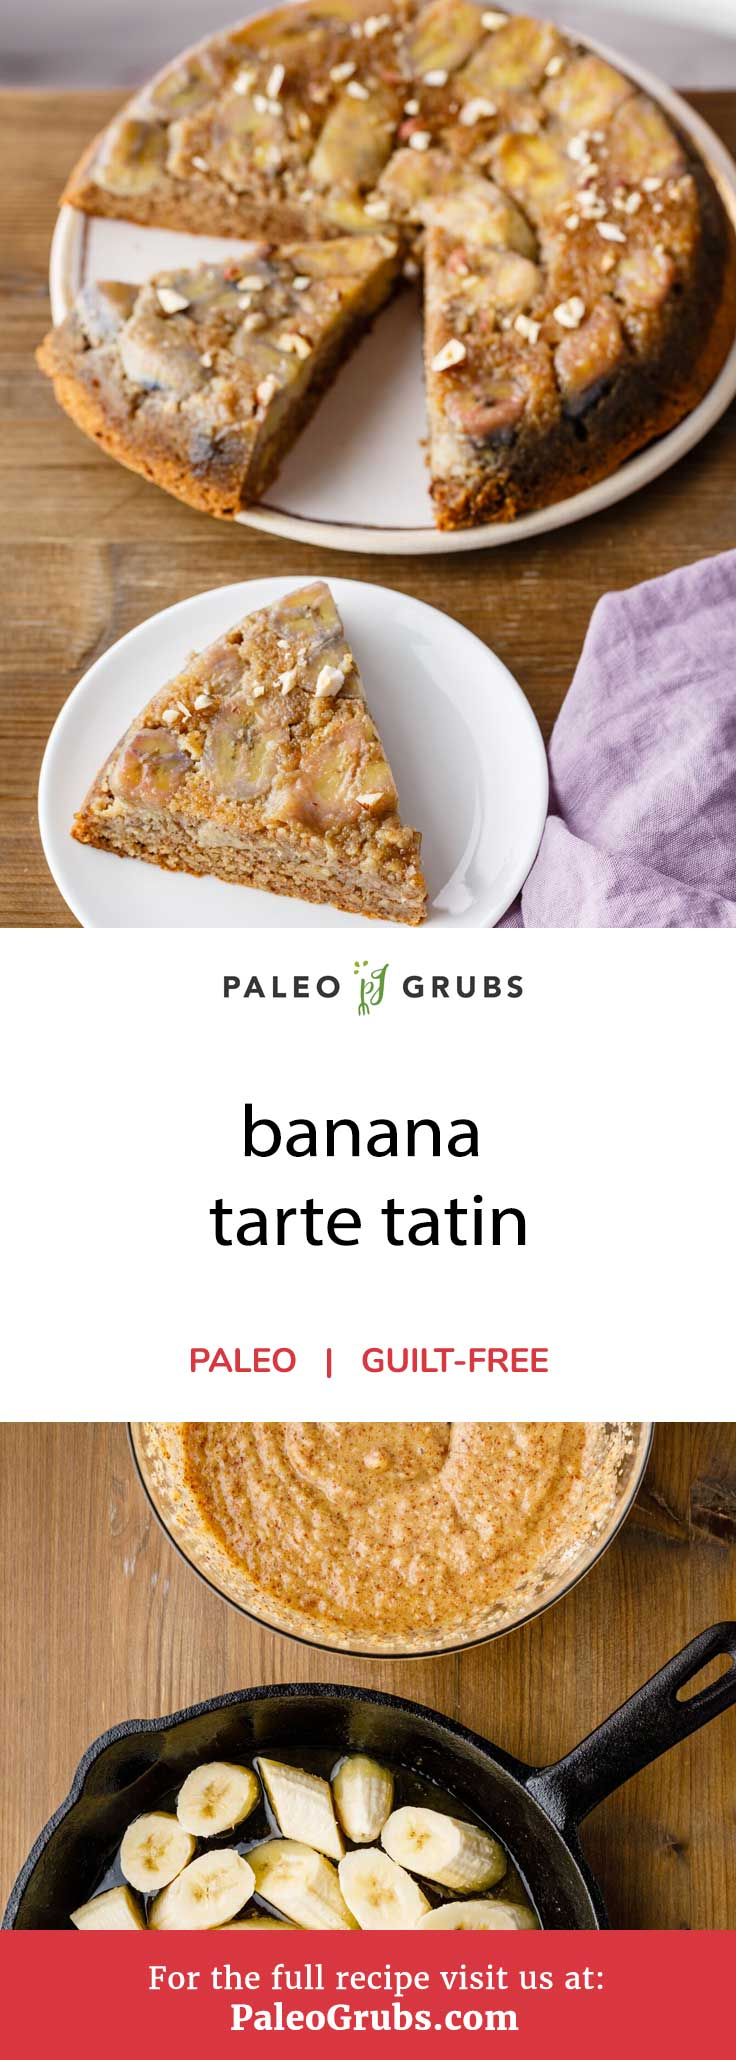 Looking for a simple to make dessert recipe that will tantalize your taste buds? Something that's deliciously sweet and sticky while still remaining paleo-friendly and healthy? This gluten-free banana tarte tatin recipe is exactly what you're looking for then. Featuring a homemade dough and filling, it's incredibly easy to prepare and takes no time to cook at all.